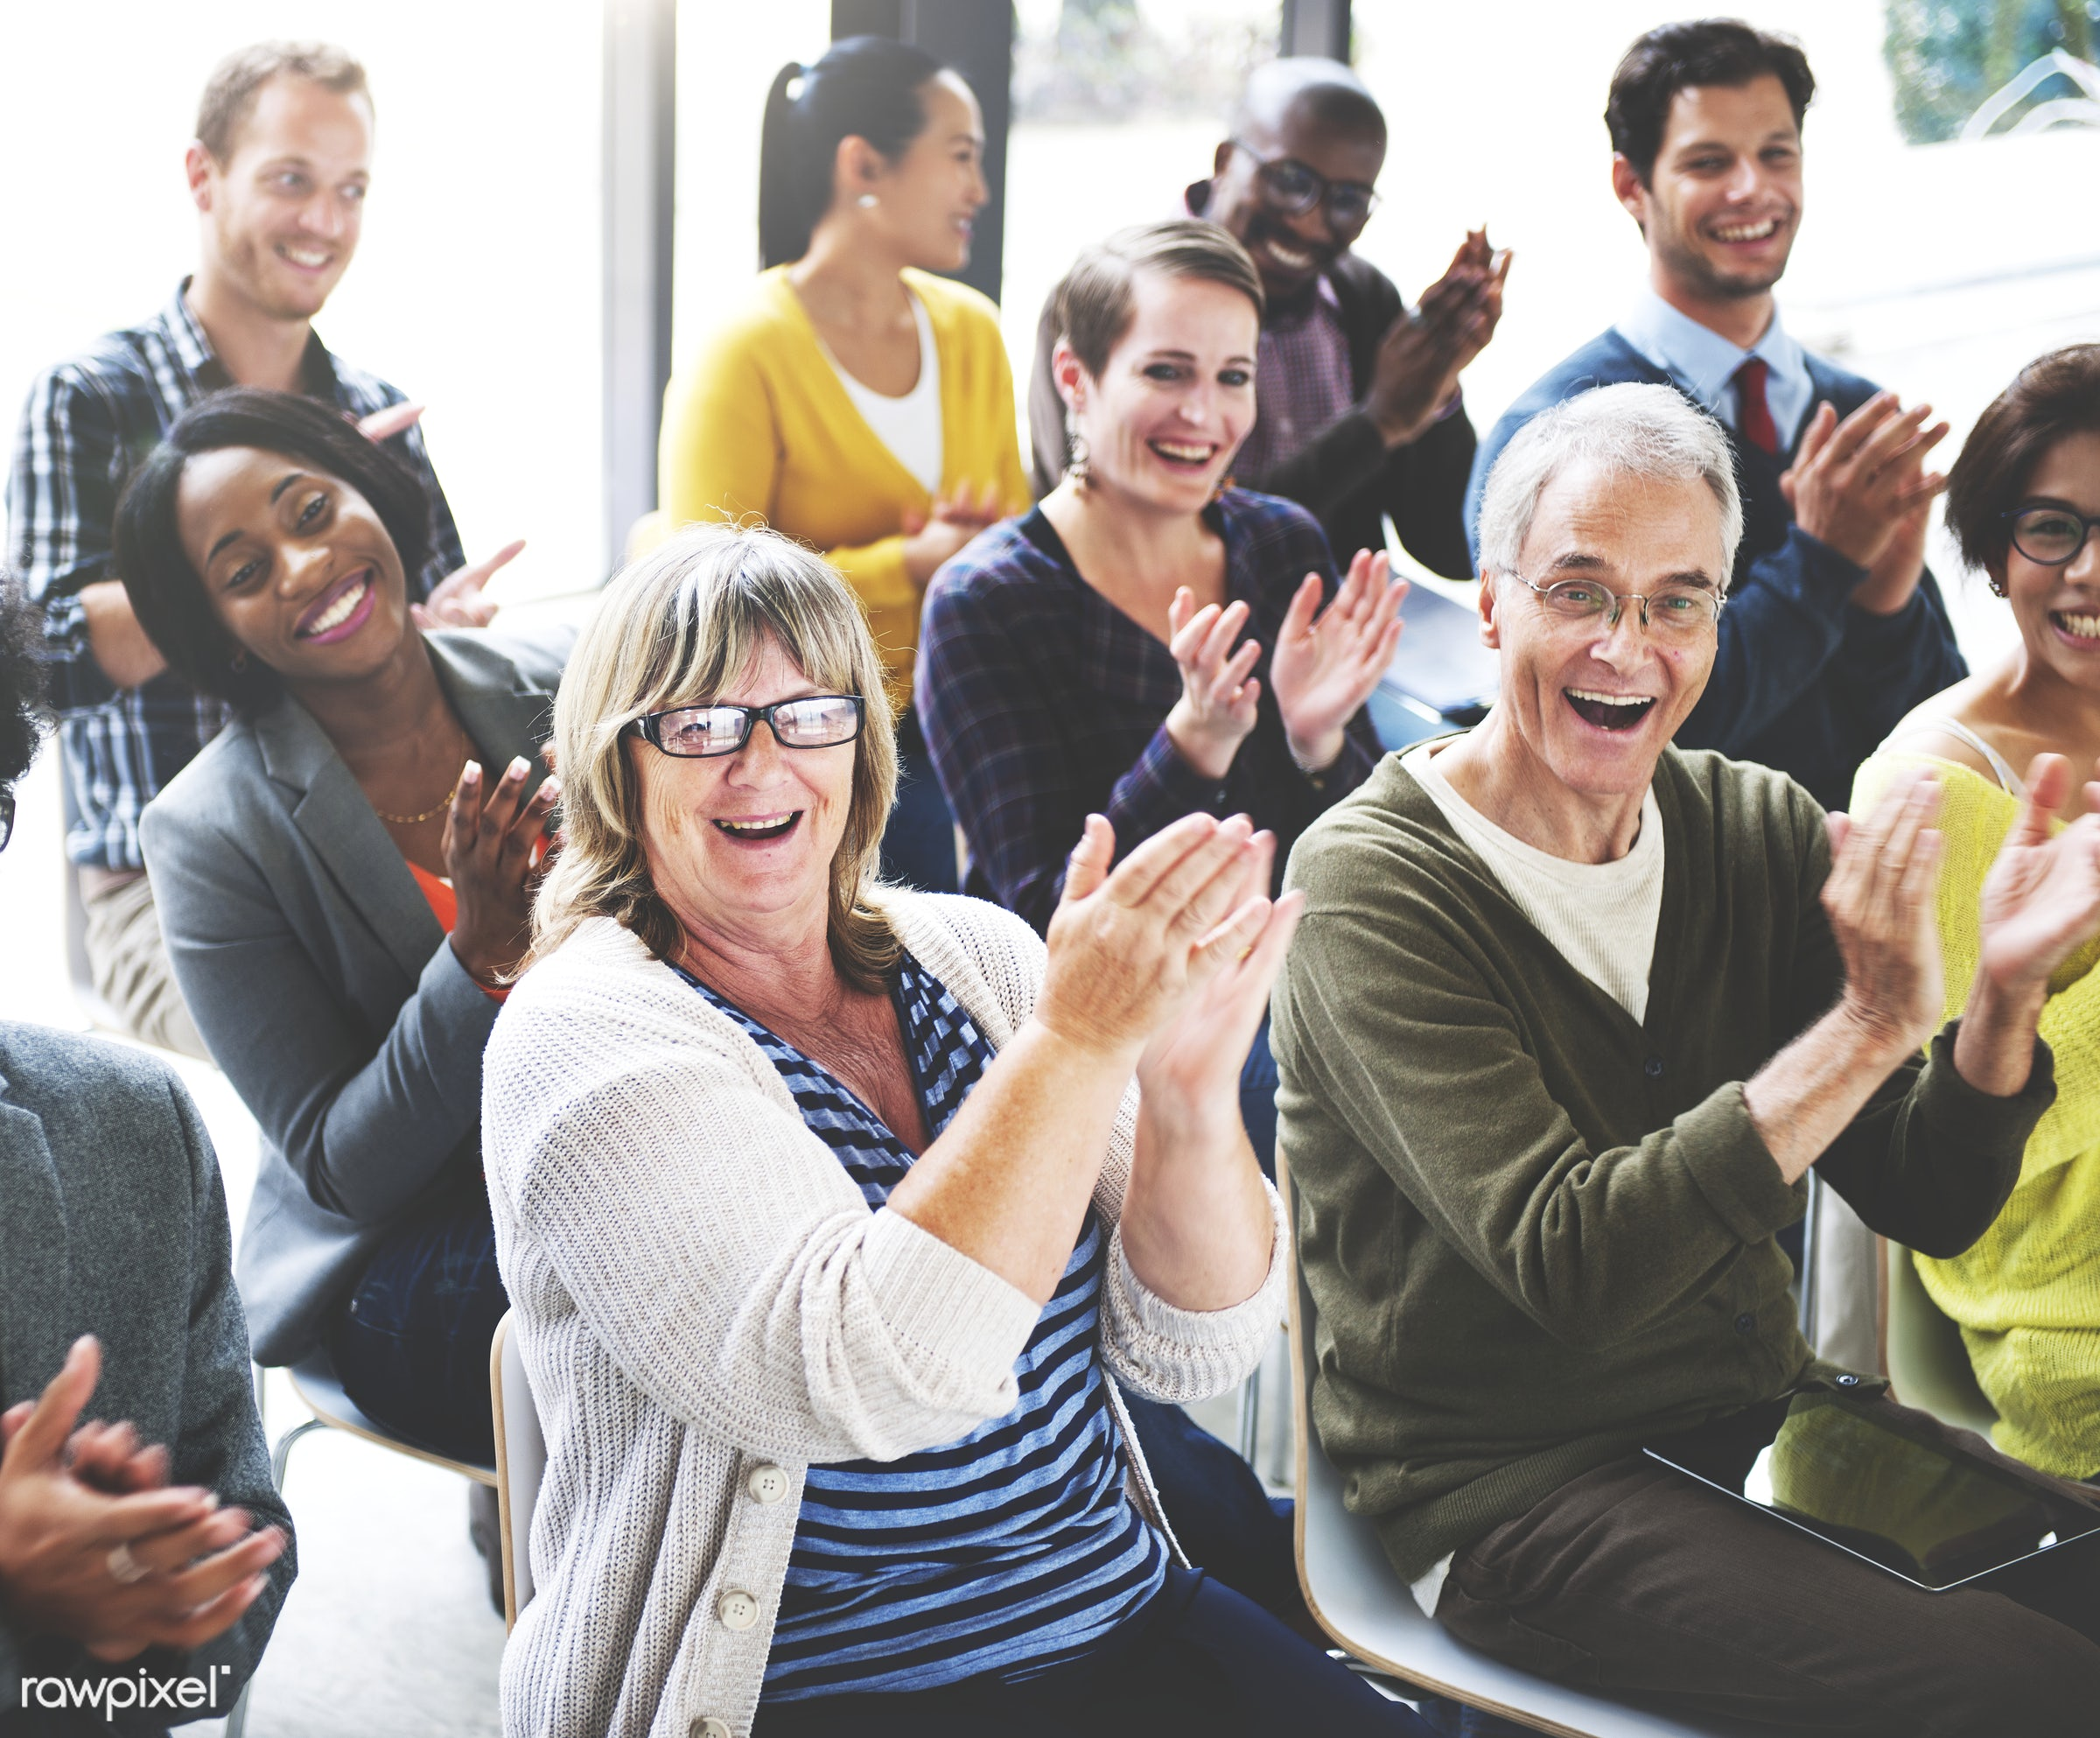 Group of diverse people in a seminar - achievement, applause, appreciation, audience, award, celebration, cheerful, cheering...